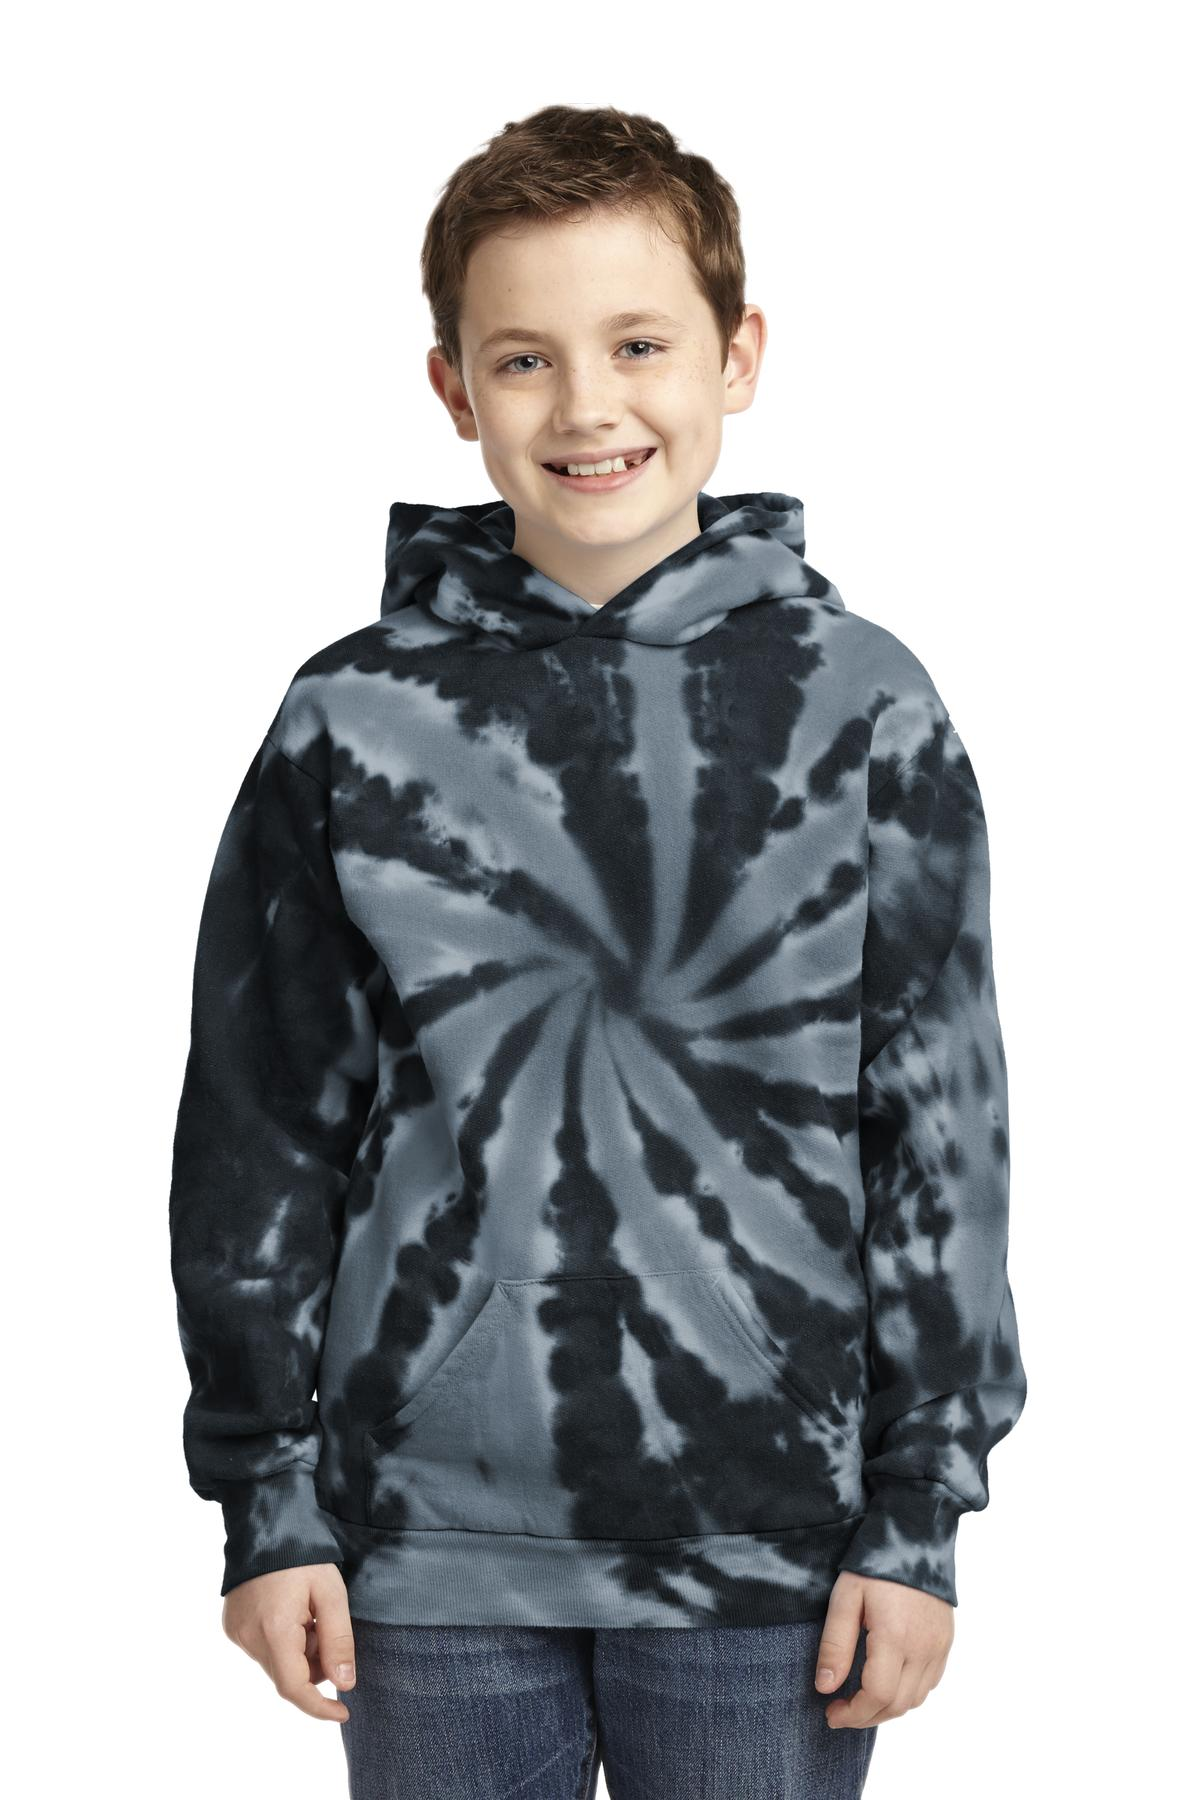 Port & Company ®  Youth Tie-Dye Pullover Hooded Sweatshirt. PC146Y - Black